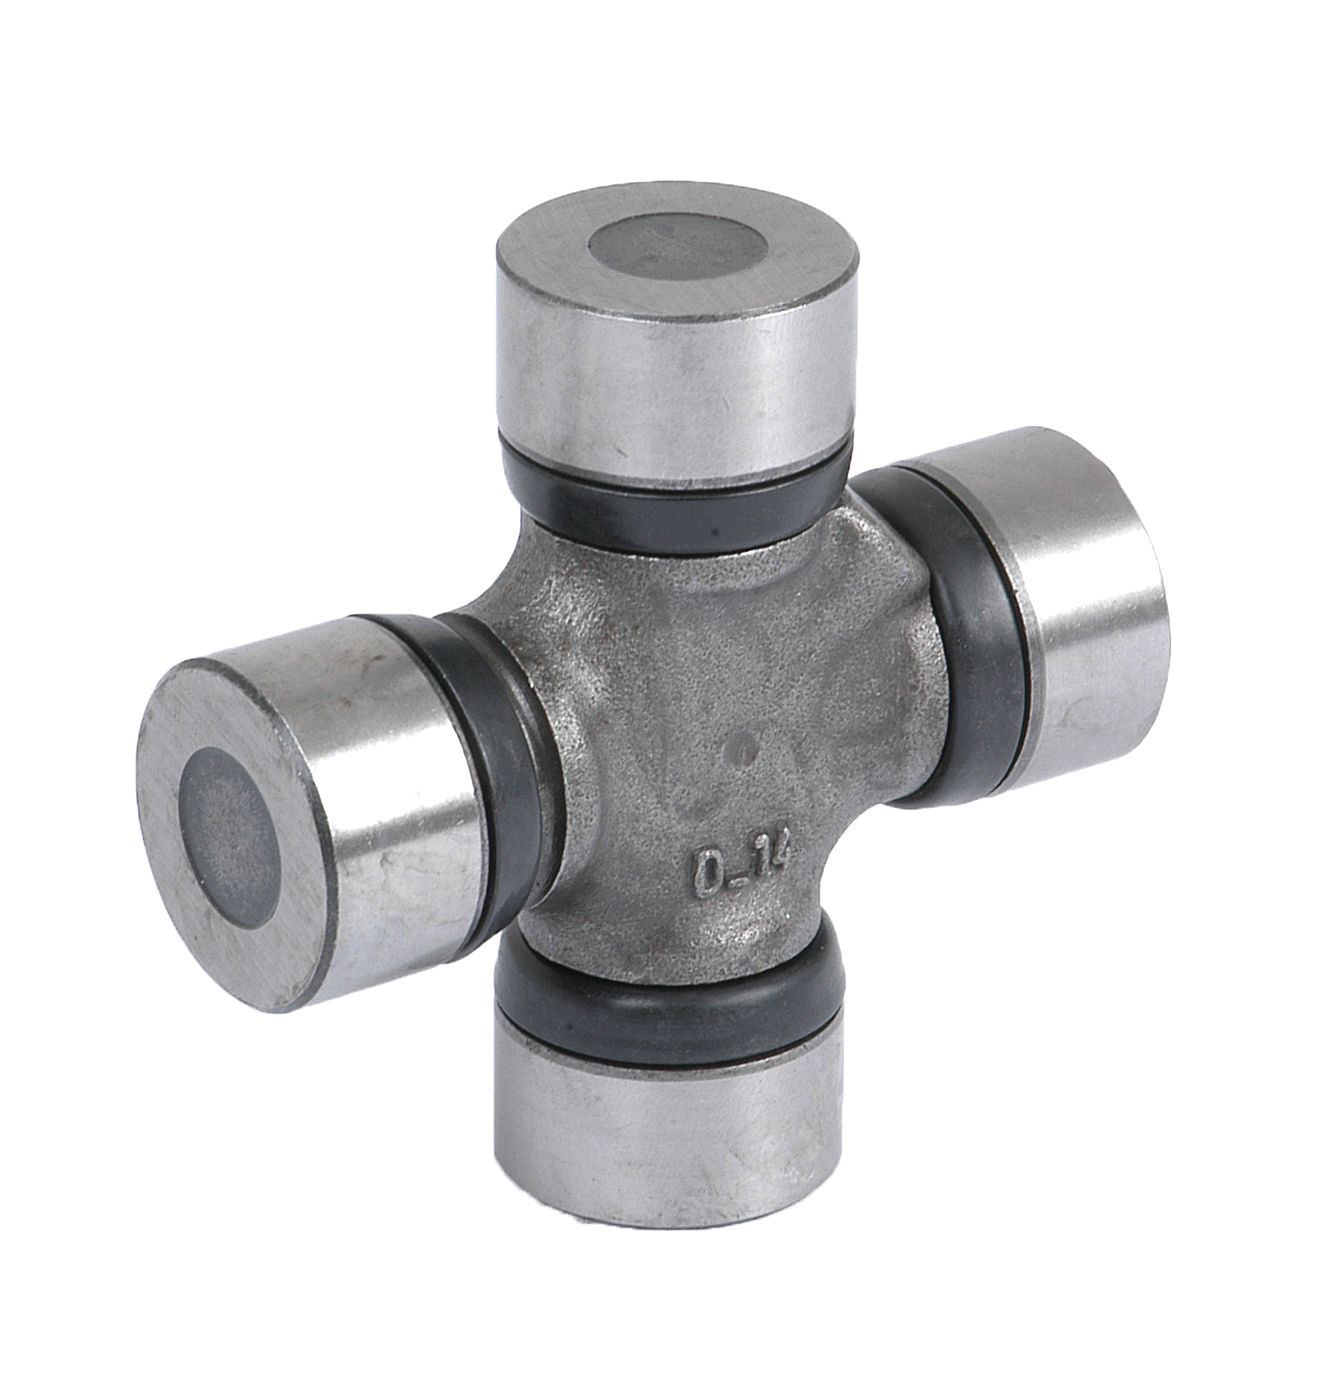 SANDERSON UNIVERSAL JOINT-27X74.5MM 65845